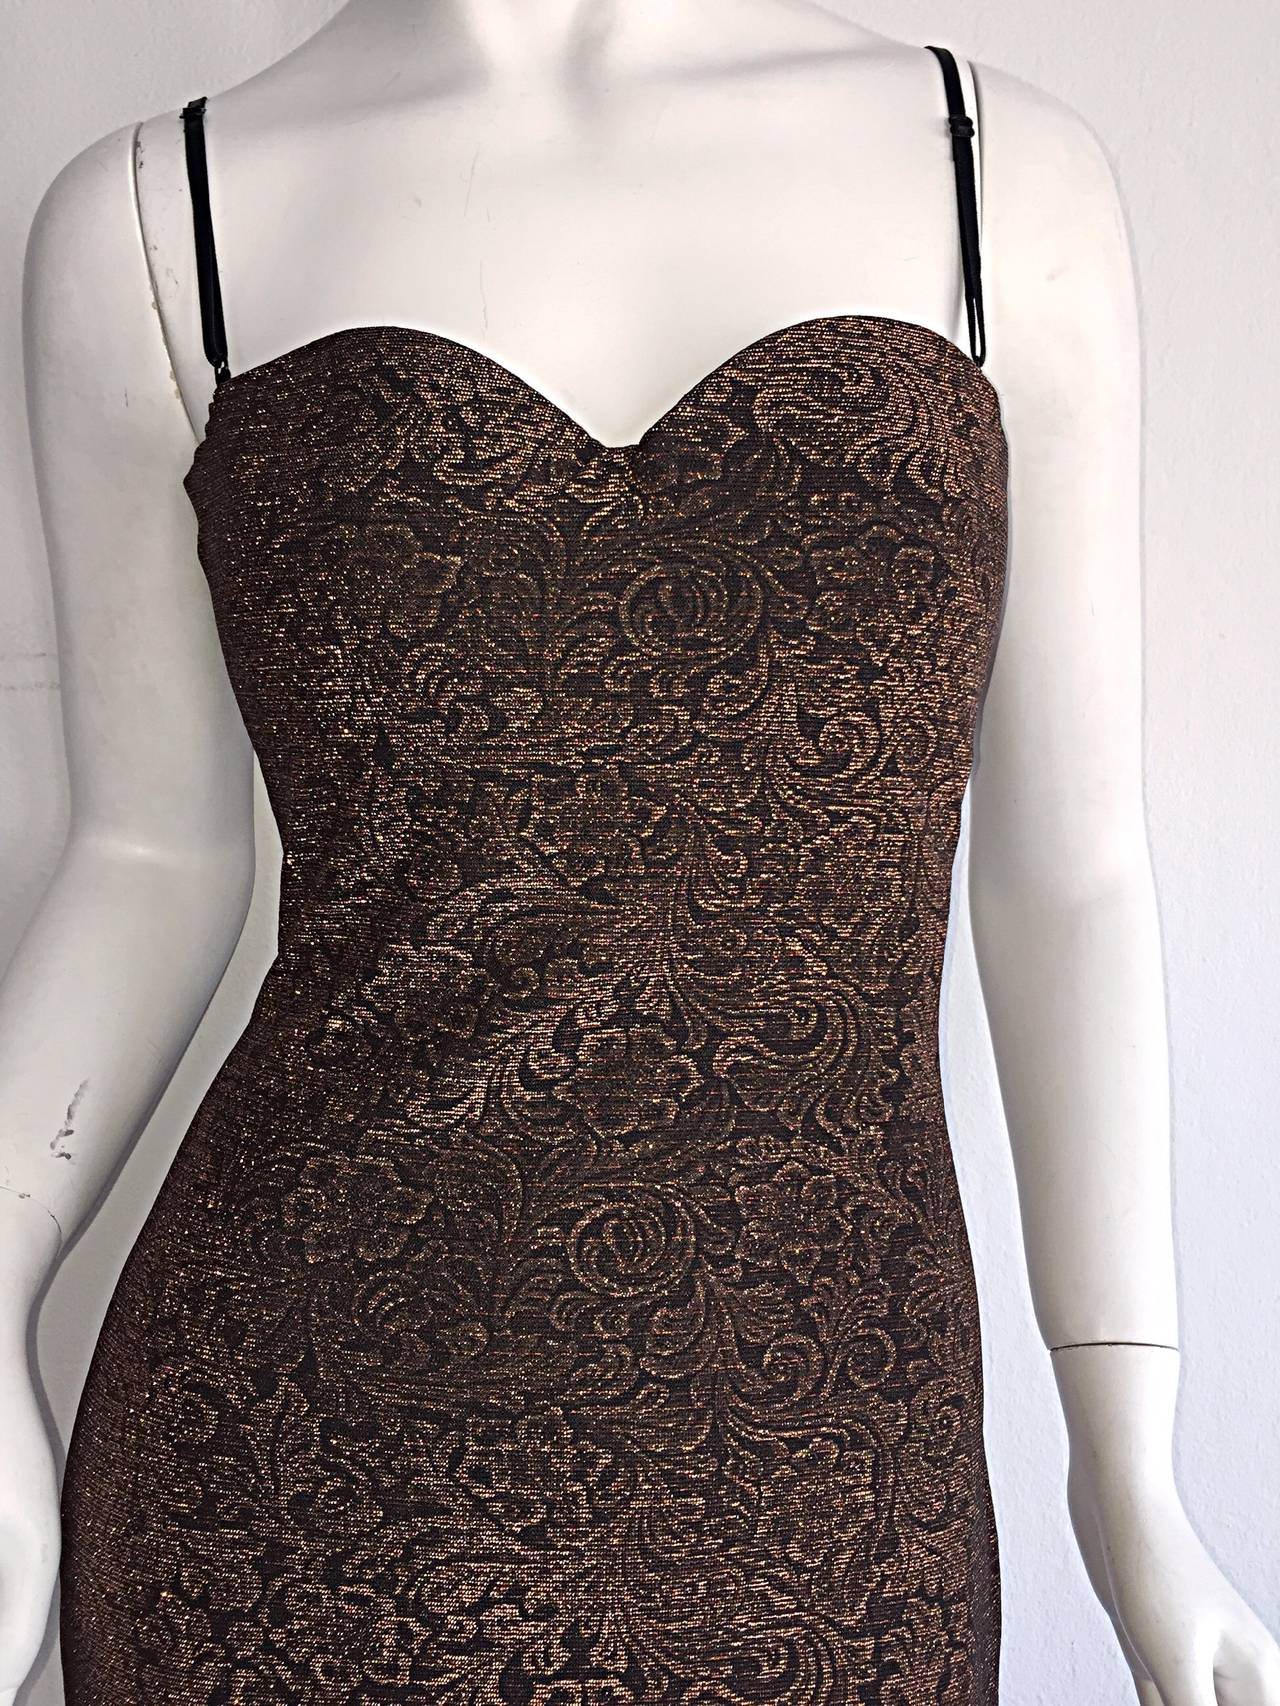 Stunning vintage Casadei bronze metallic dress! Intricate print, that shines, and flatters the body like no other when worn! Features adjustable convertible straps that easily tuck in for a strapless look. Beautiful sweetheart bust. Looks great